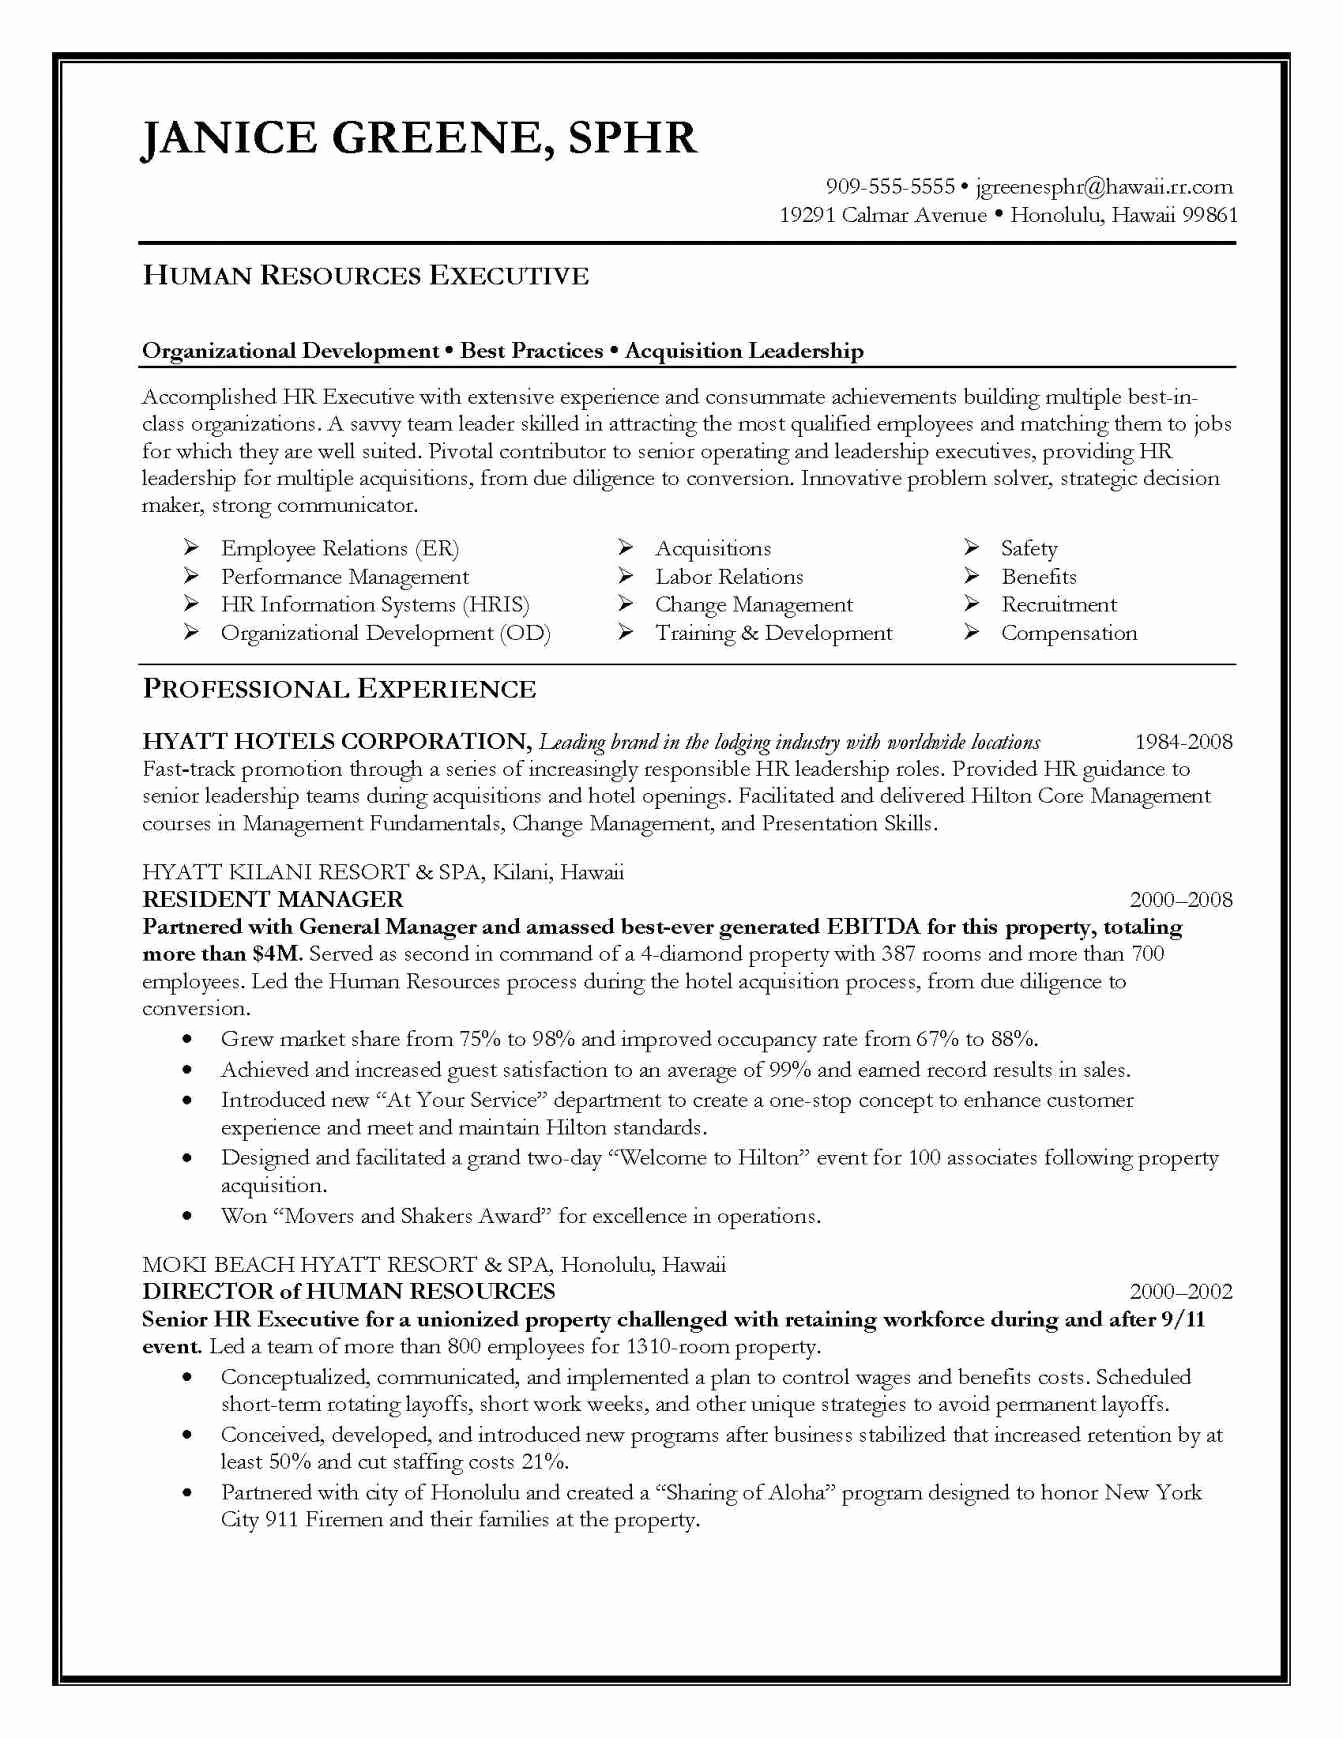 Entry Level Human Resources Resume Examples - Human Resources Resume Examples Resume Objective Statement Entry